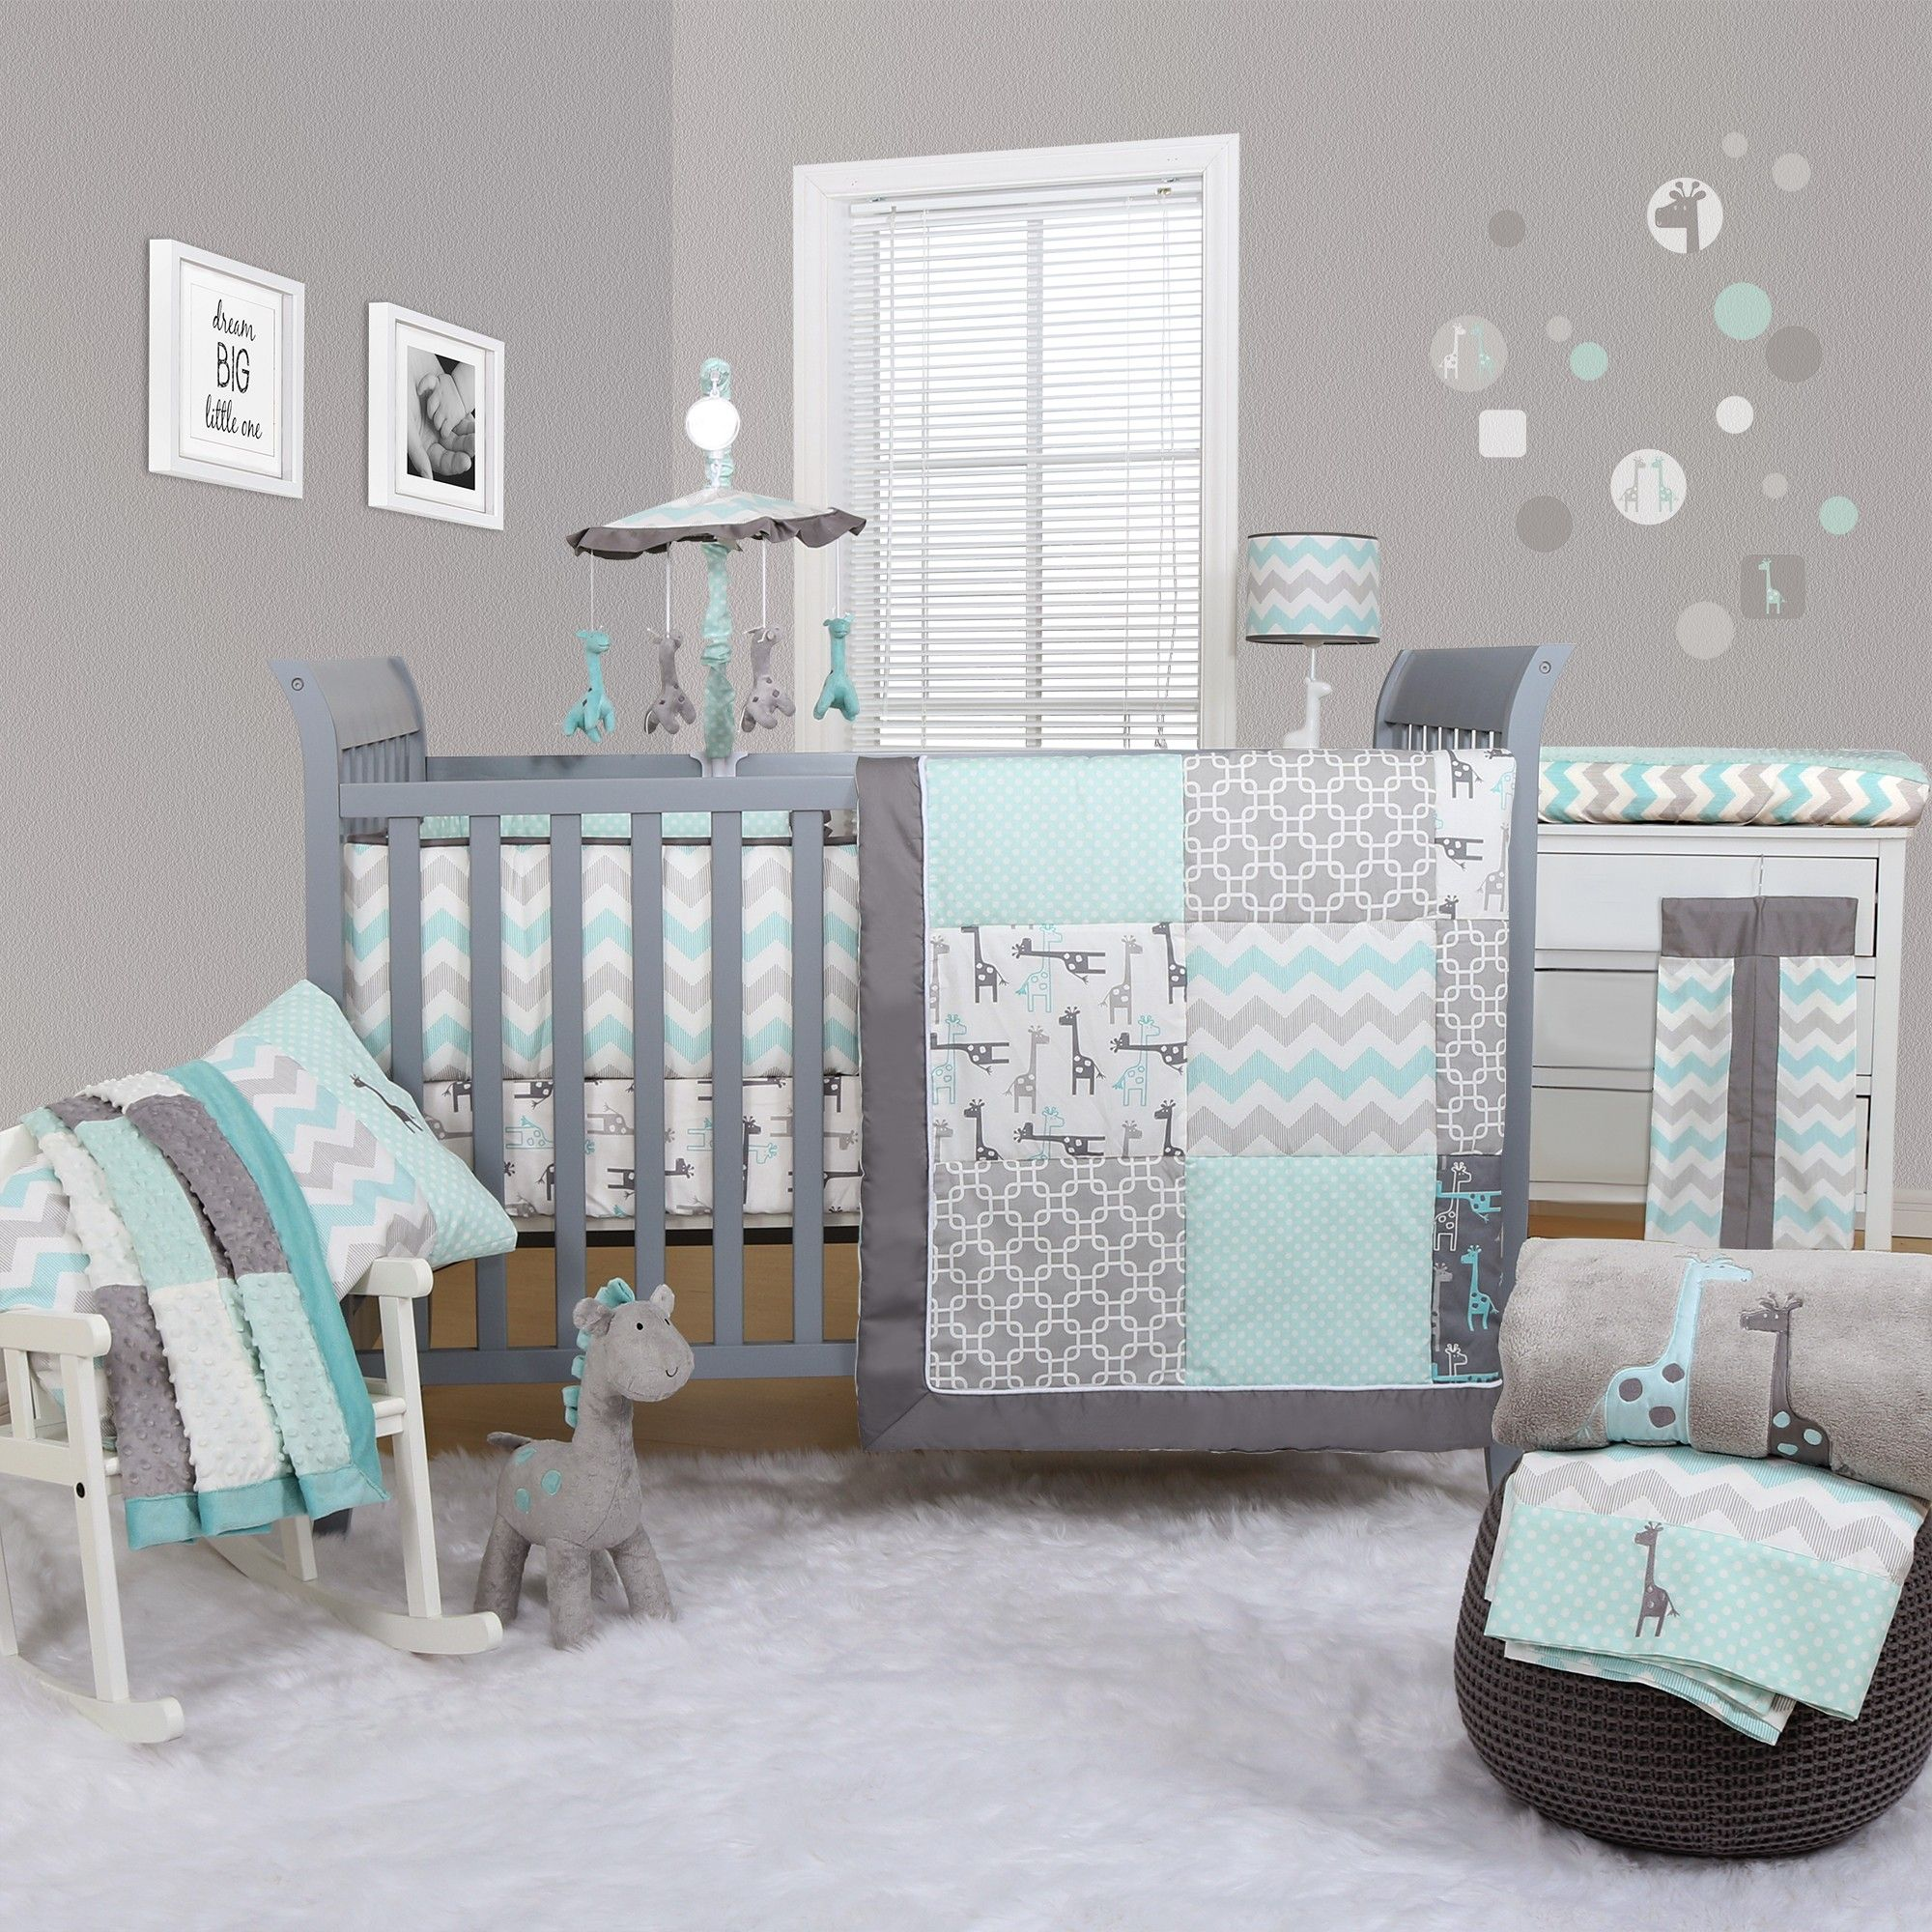 bed transportation nursery cute crib room grey bedding circo set sale elephant bedroom solid sets black decor baseball red white clearance baby boy dinosaur and nautical